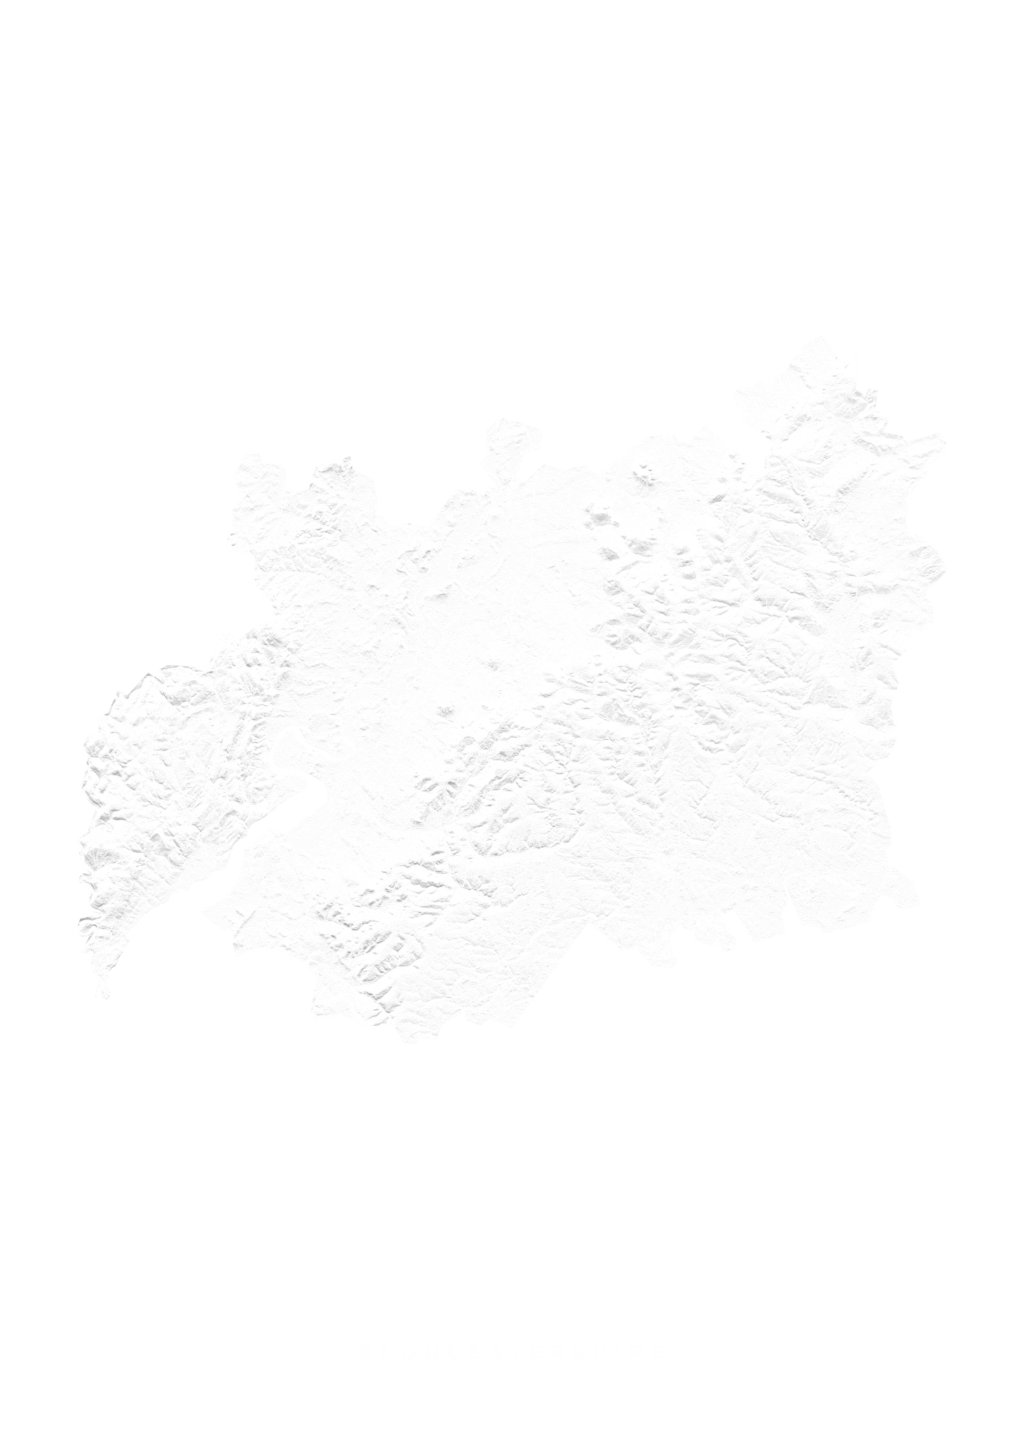 Gloucestershire wall map